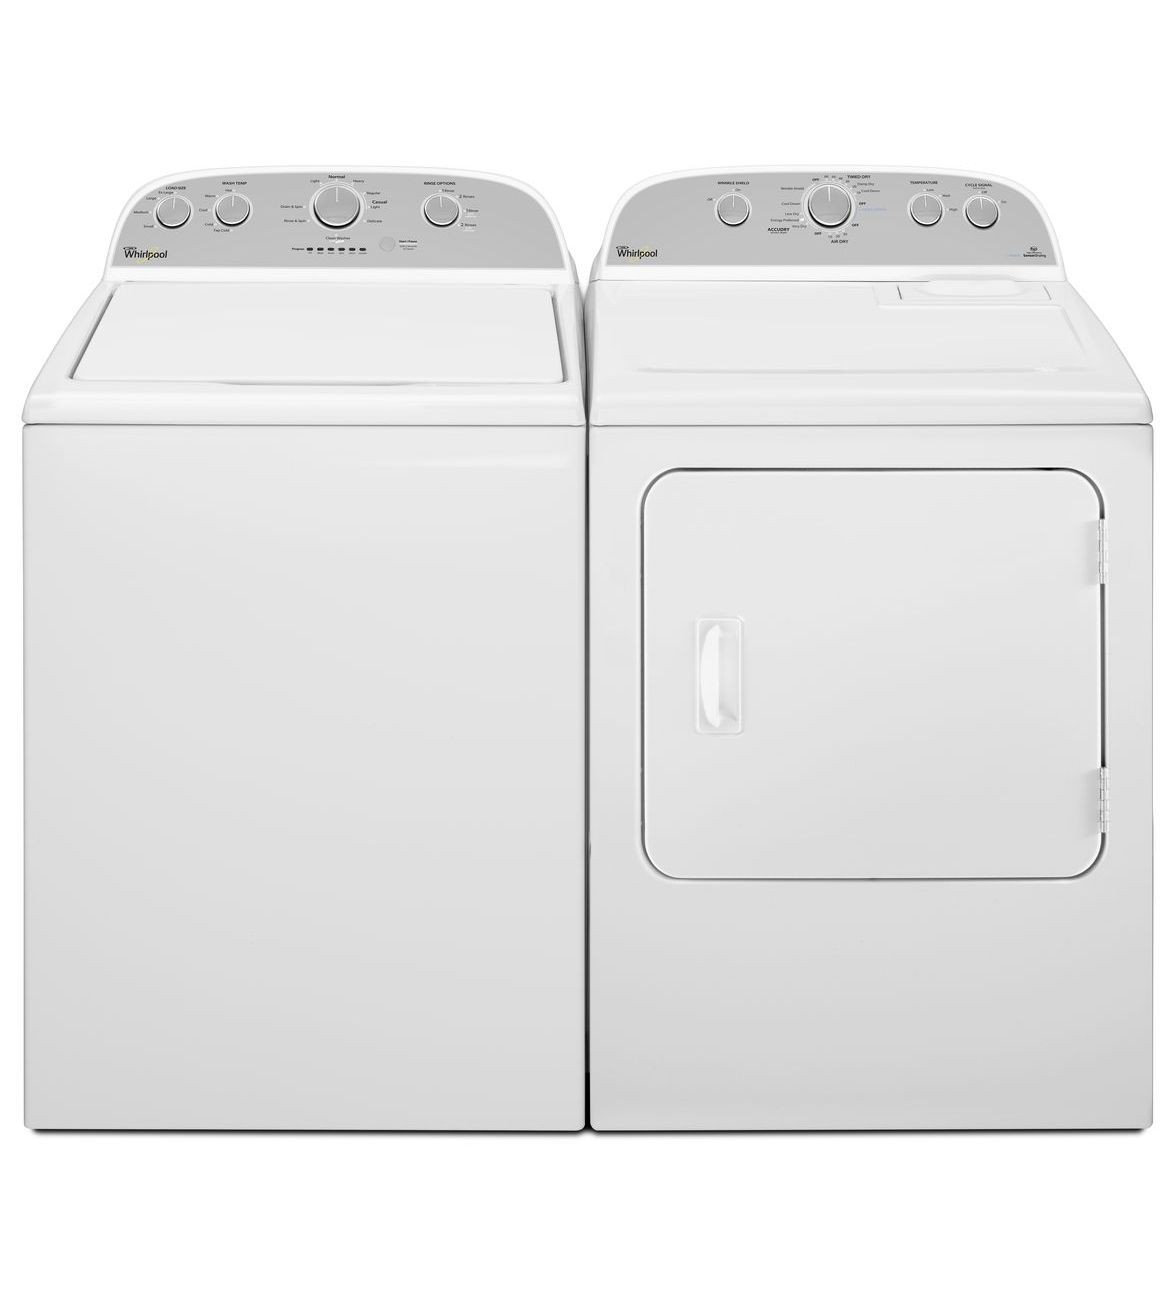 "Whirlpool WTW5000DW & YWED49STBW, Top Load Washer, 27 1/2"" Width, 5.0 Cu. Ft. Capacity, 12 Wash Cycles, 5 Temperature Settings, Dryer, 30 3/4"" Width, Electric Dryer, 7.0 Cu. Ft. Capacity, 12 Dry Cycles"